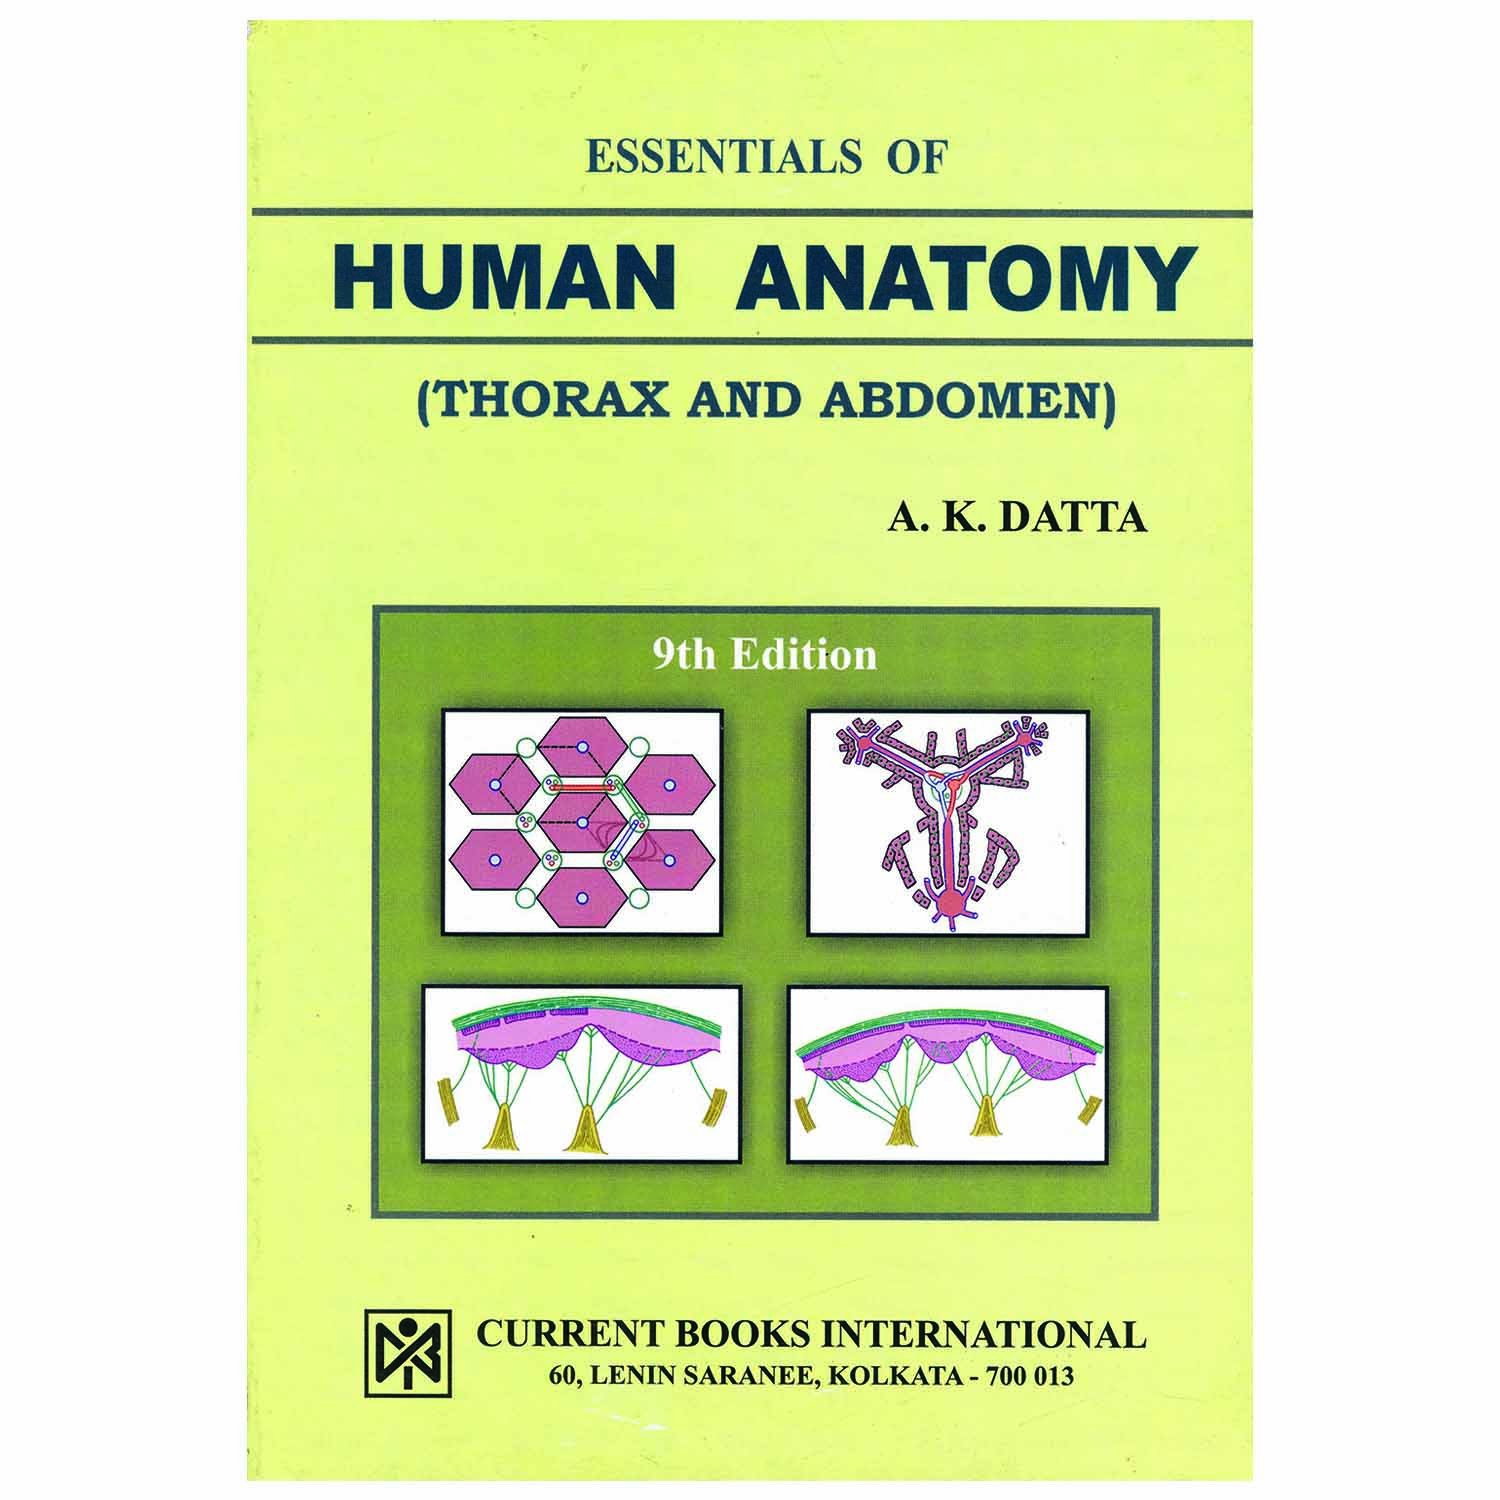 Amazon Buy Essentials Of Human Anatomy Vol 1 Thorax And